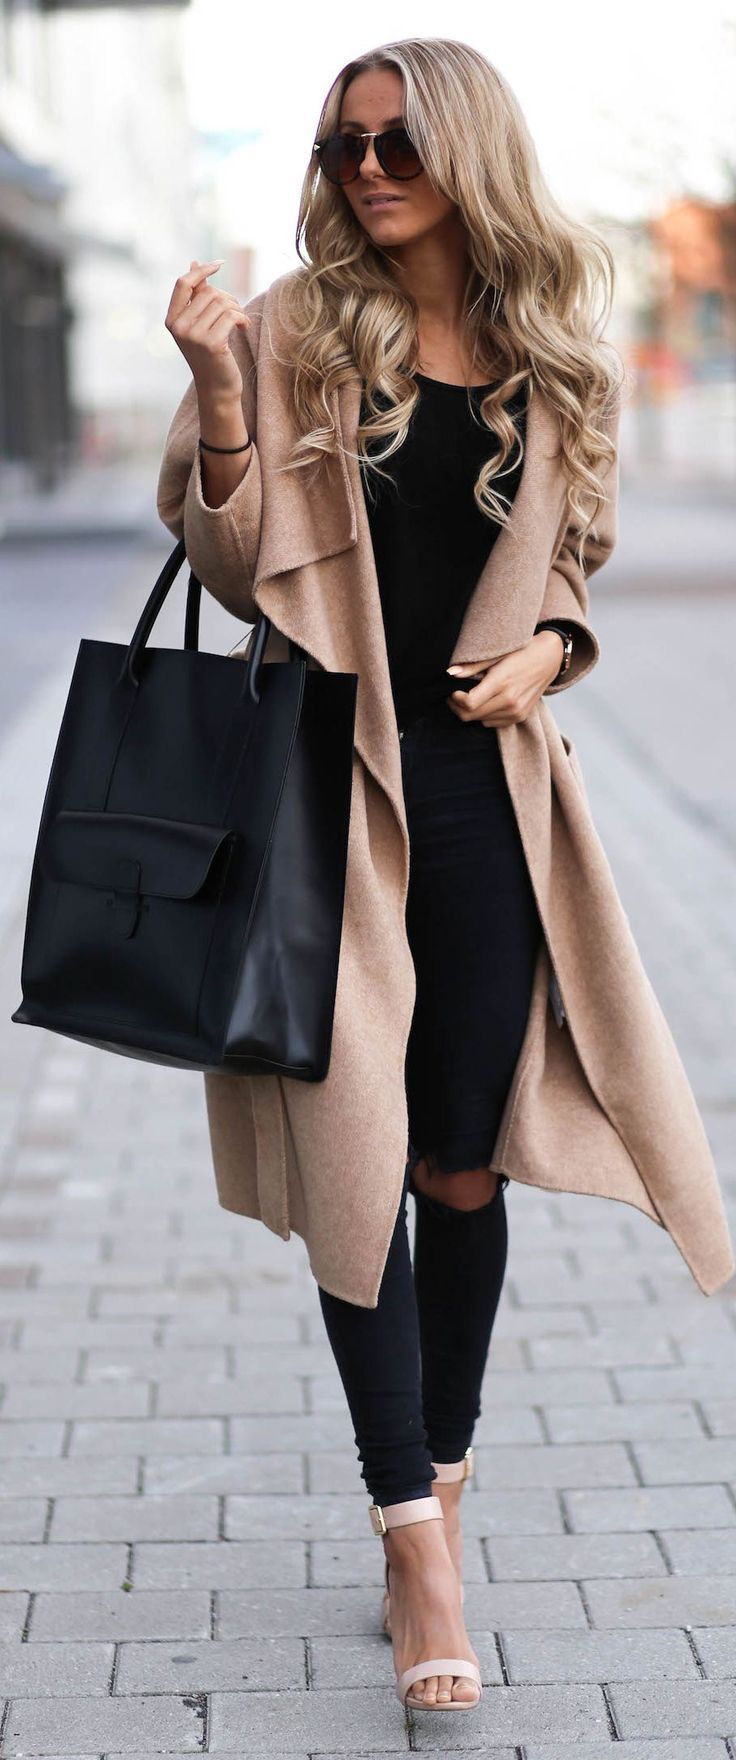 25+ Best Ideas About Classy Winter Outfits On Pinterest